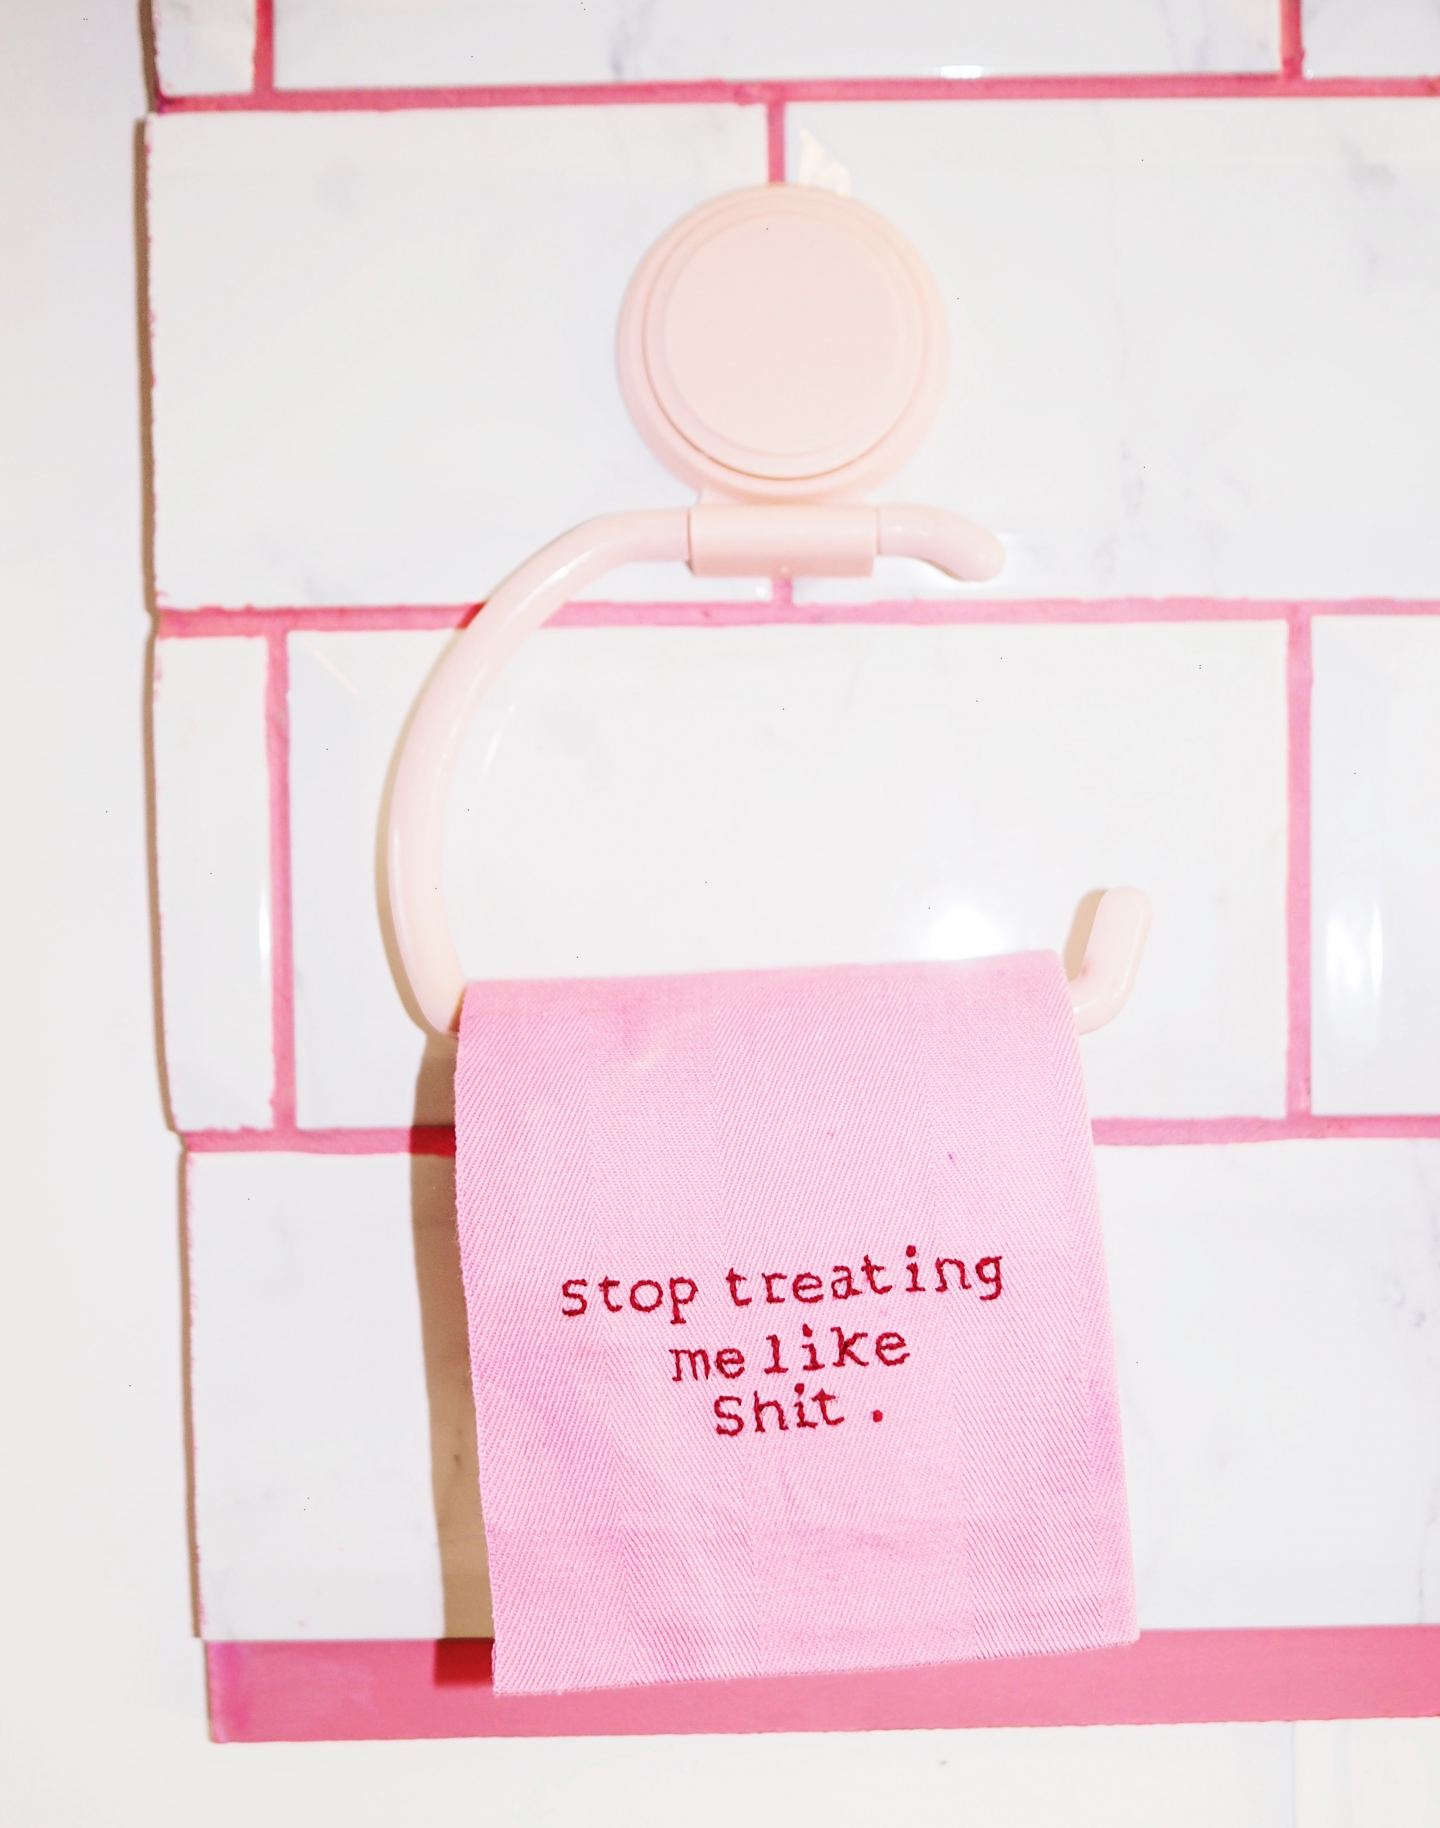 stop treating me like shit toilet paper exhibtions parlour noir pink